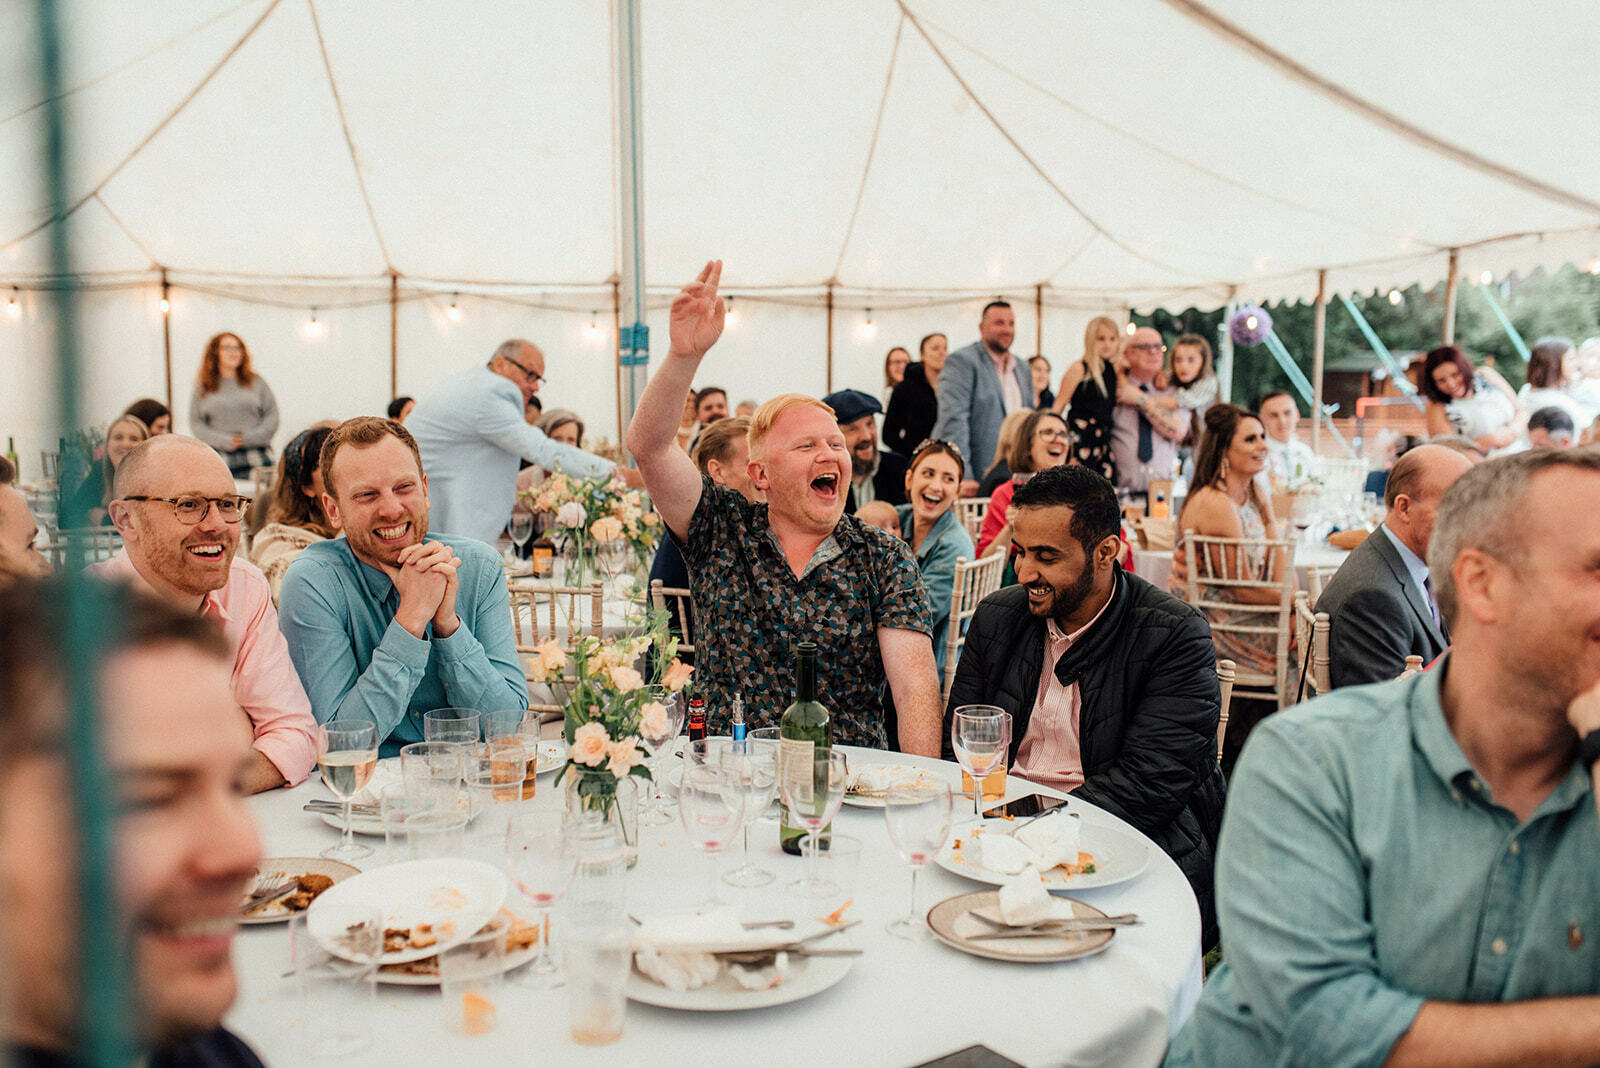 guests laugh and raise a hand as they sit round a table during a wedding at The Klondyke